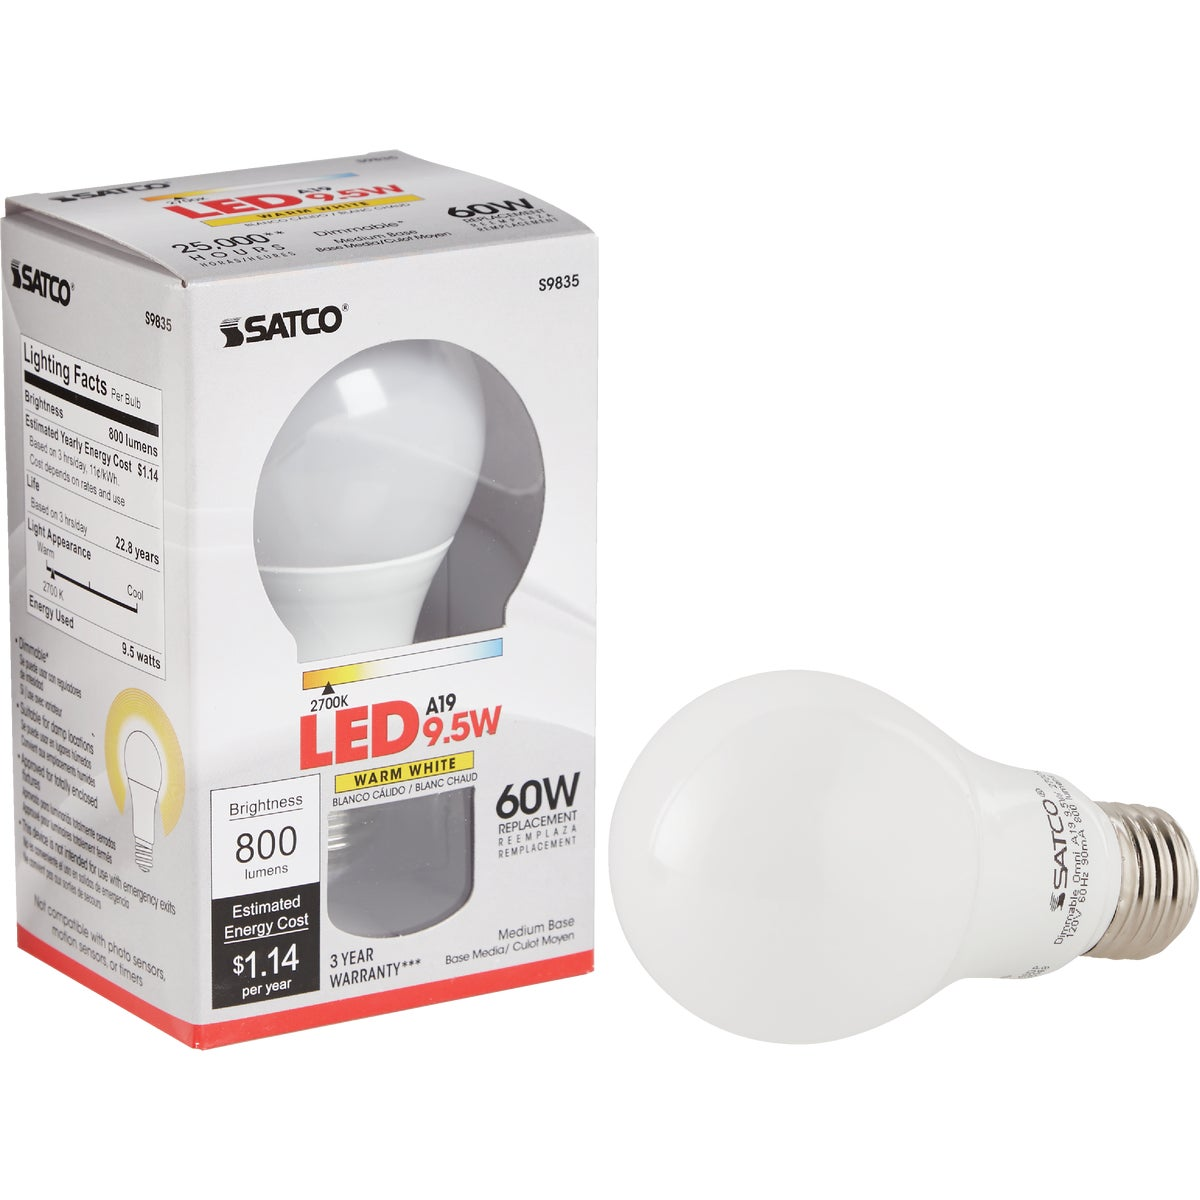 11W 27K LED A19 BULB - RLAS11W27K by TCP